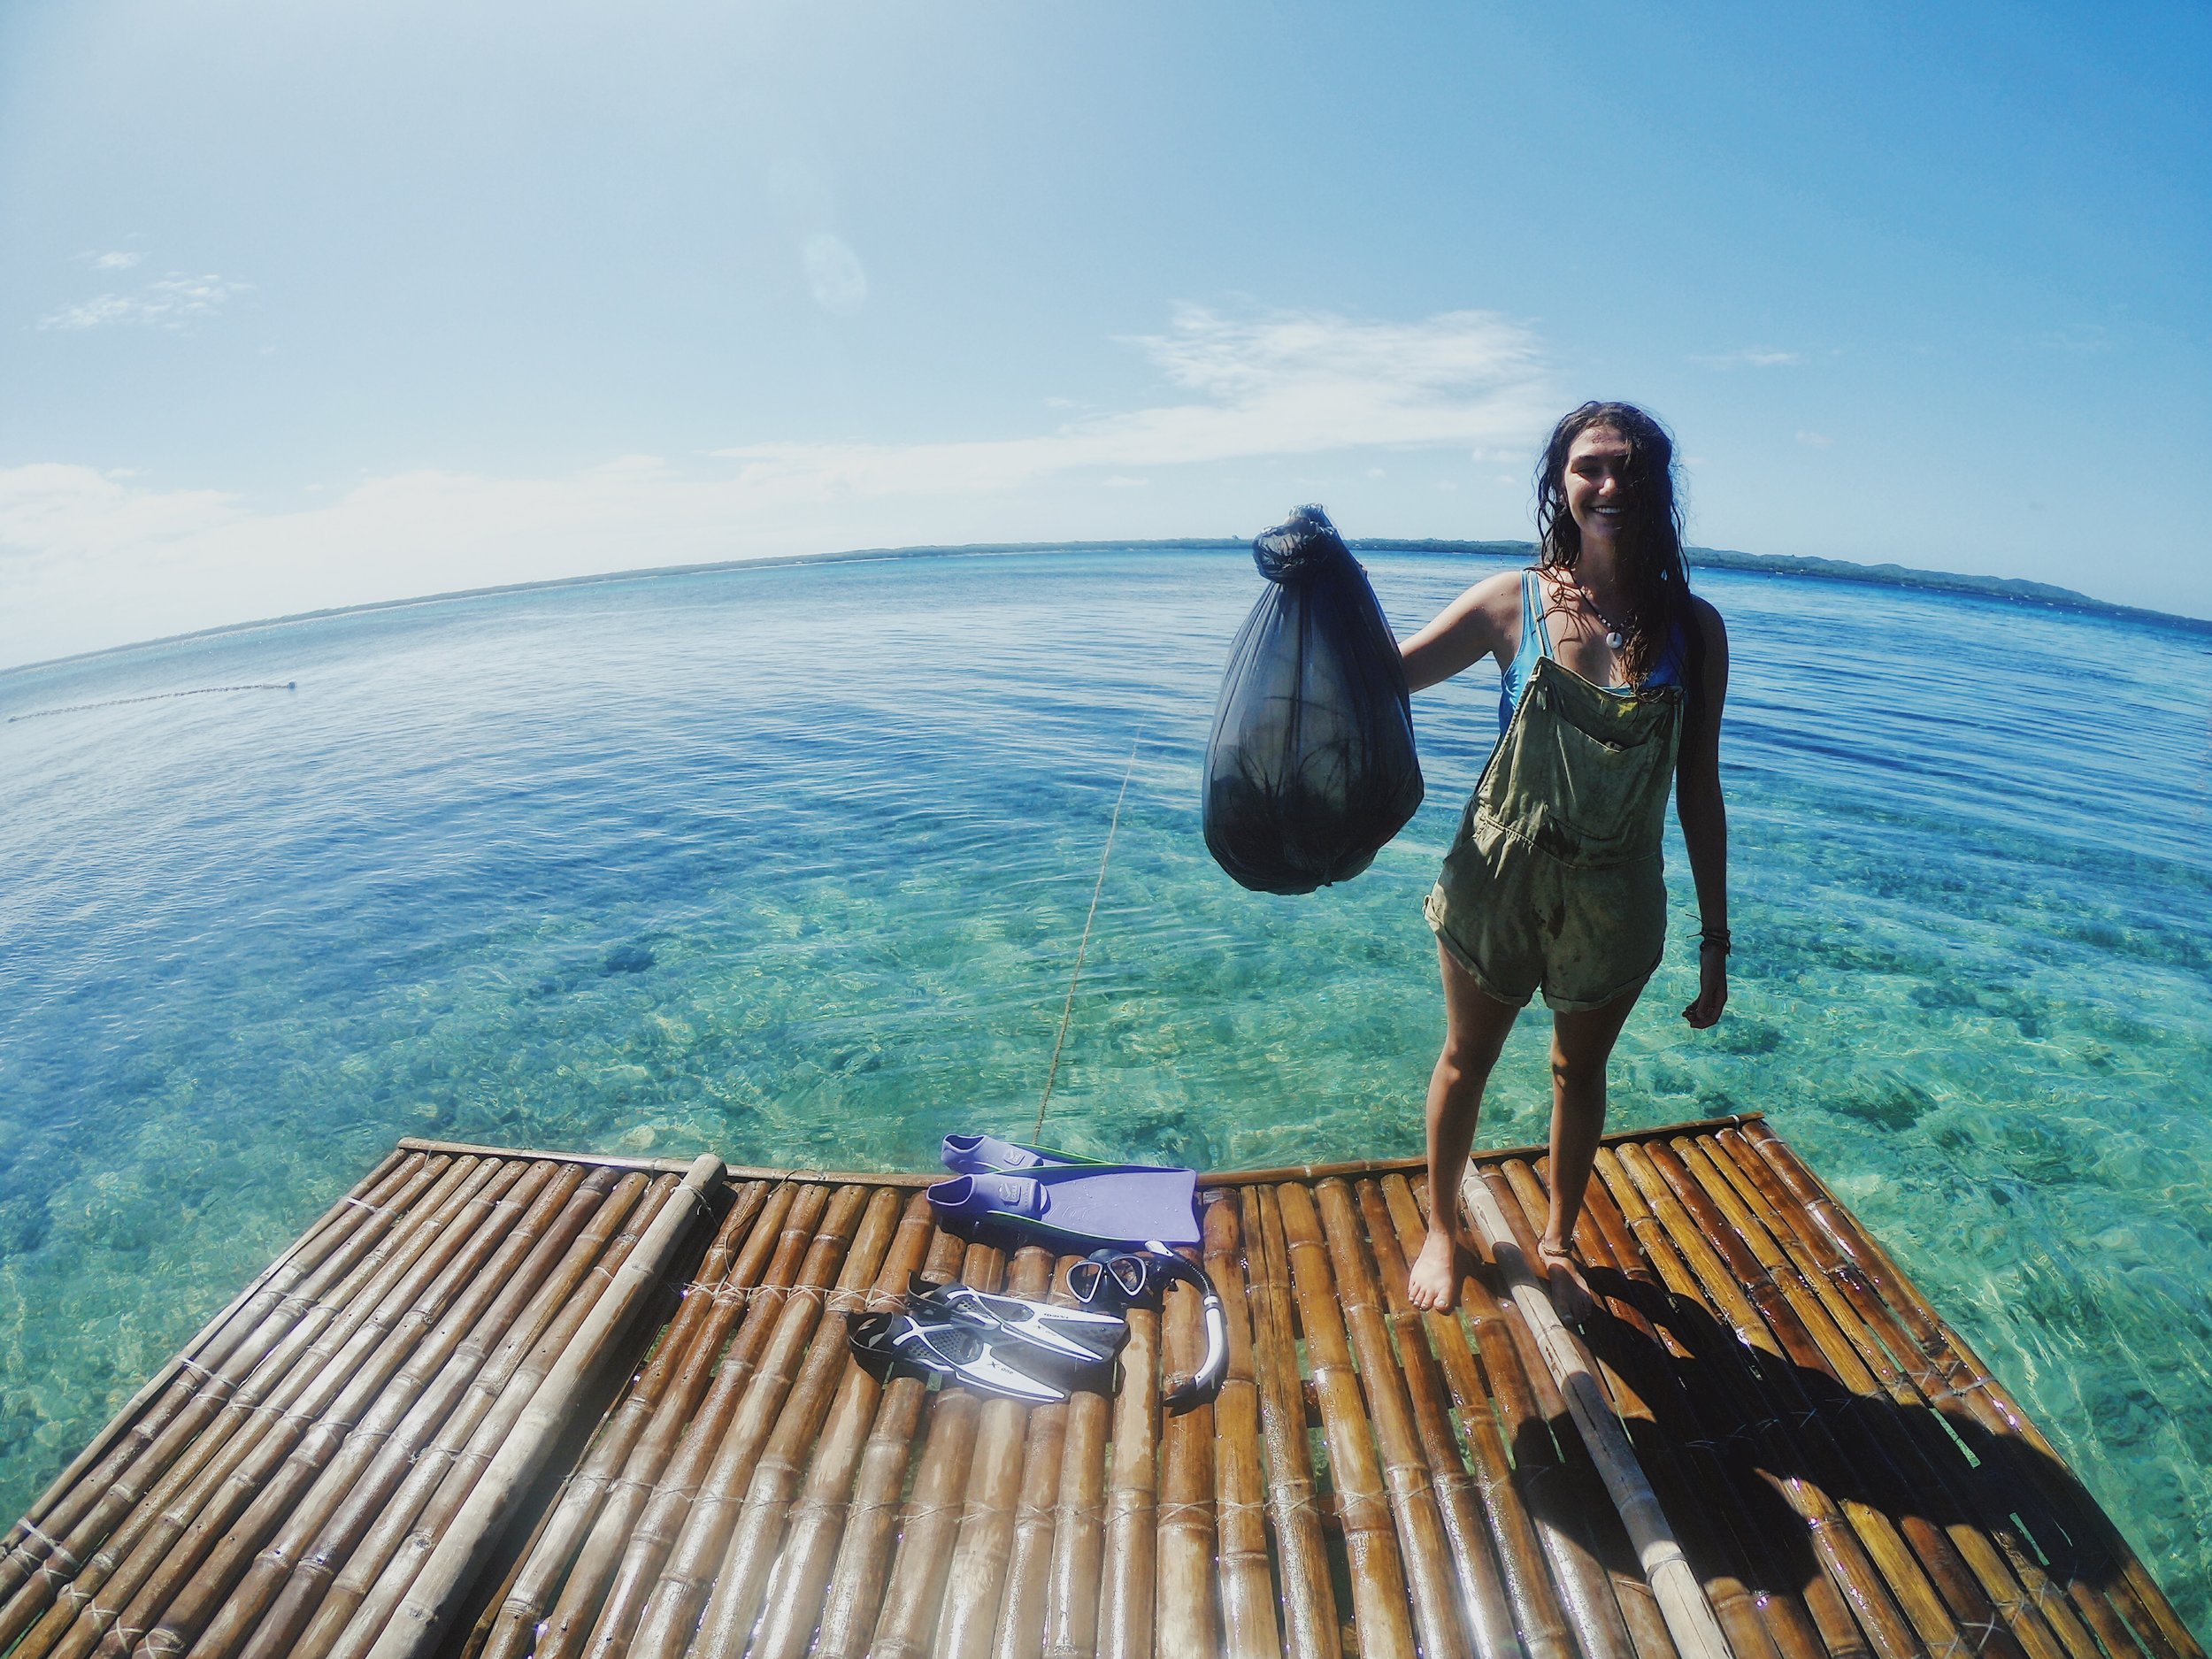 More rubbish collected off the reef